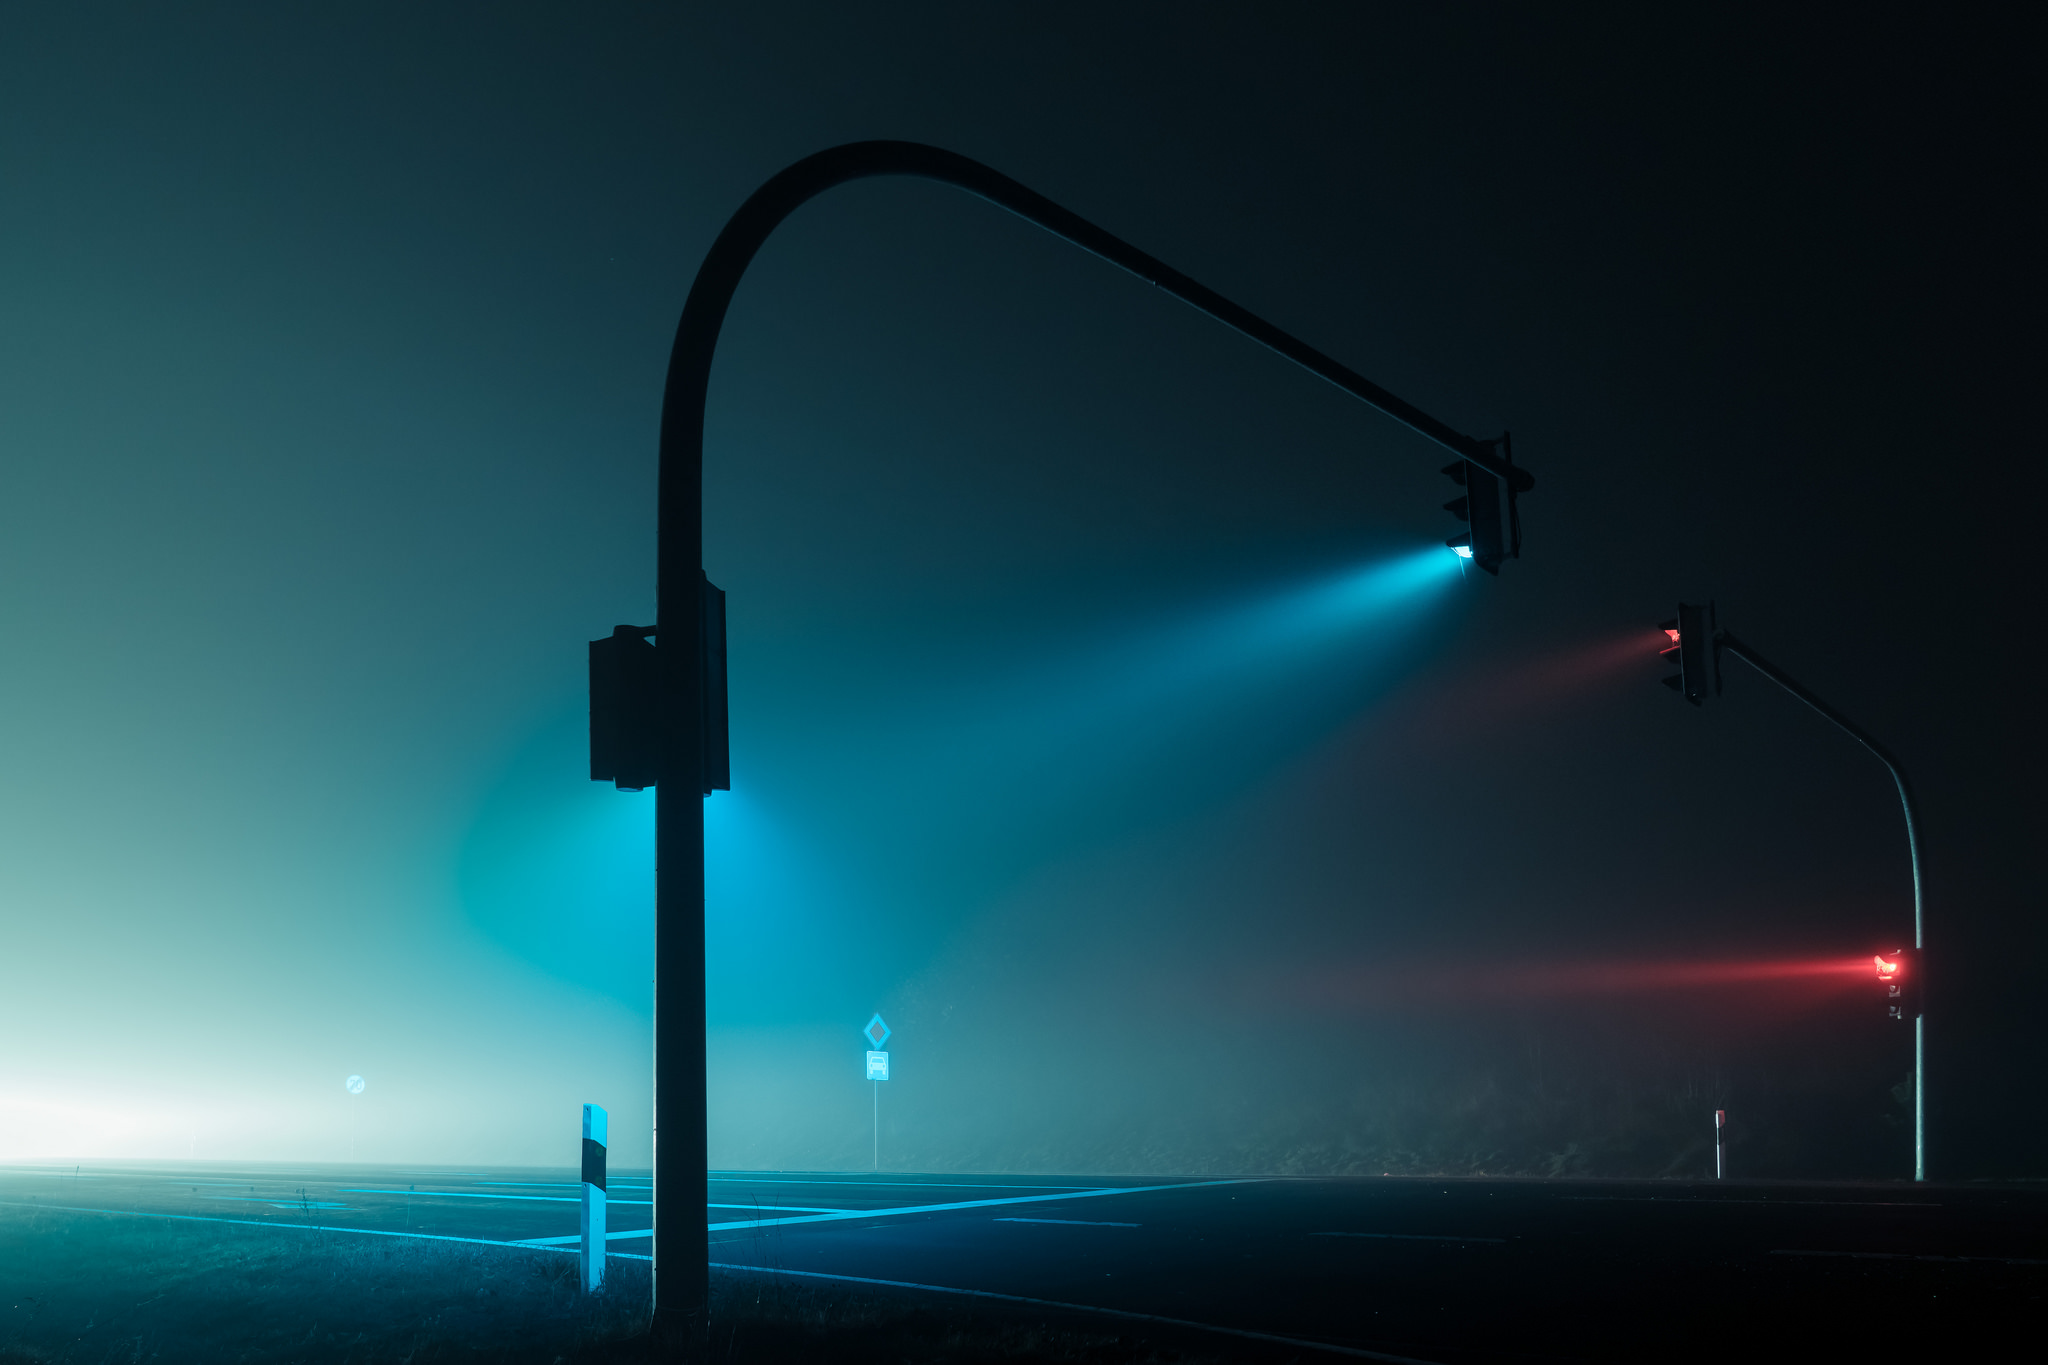 Andreas Levers - atnight traffic